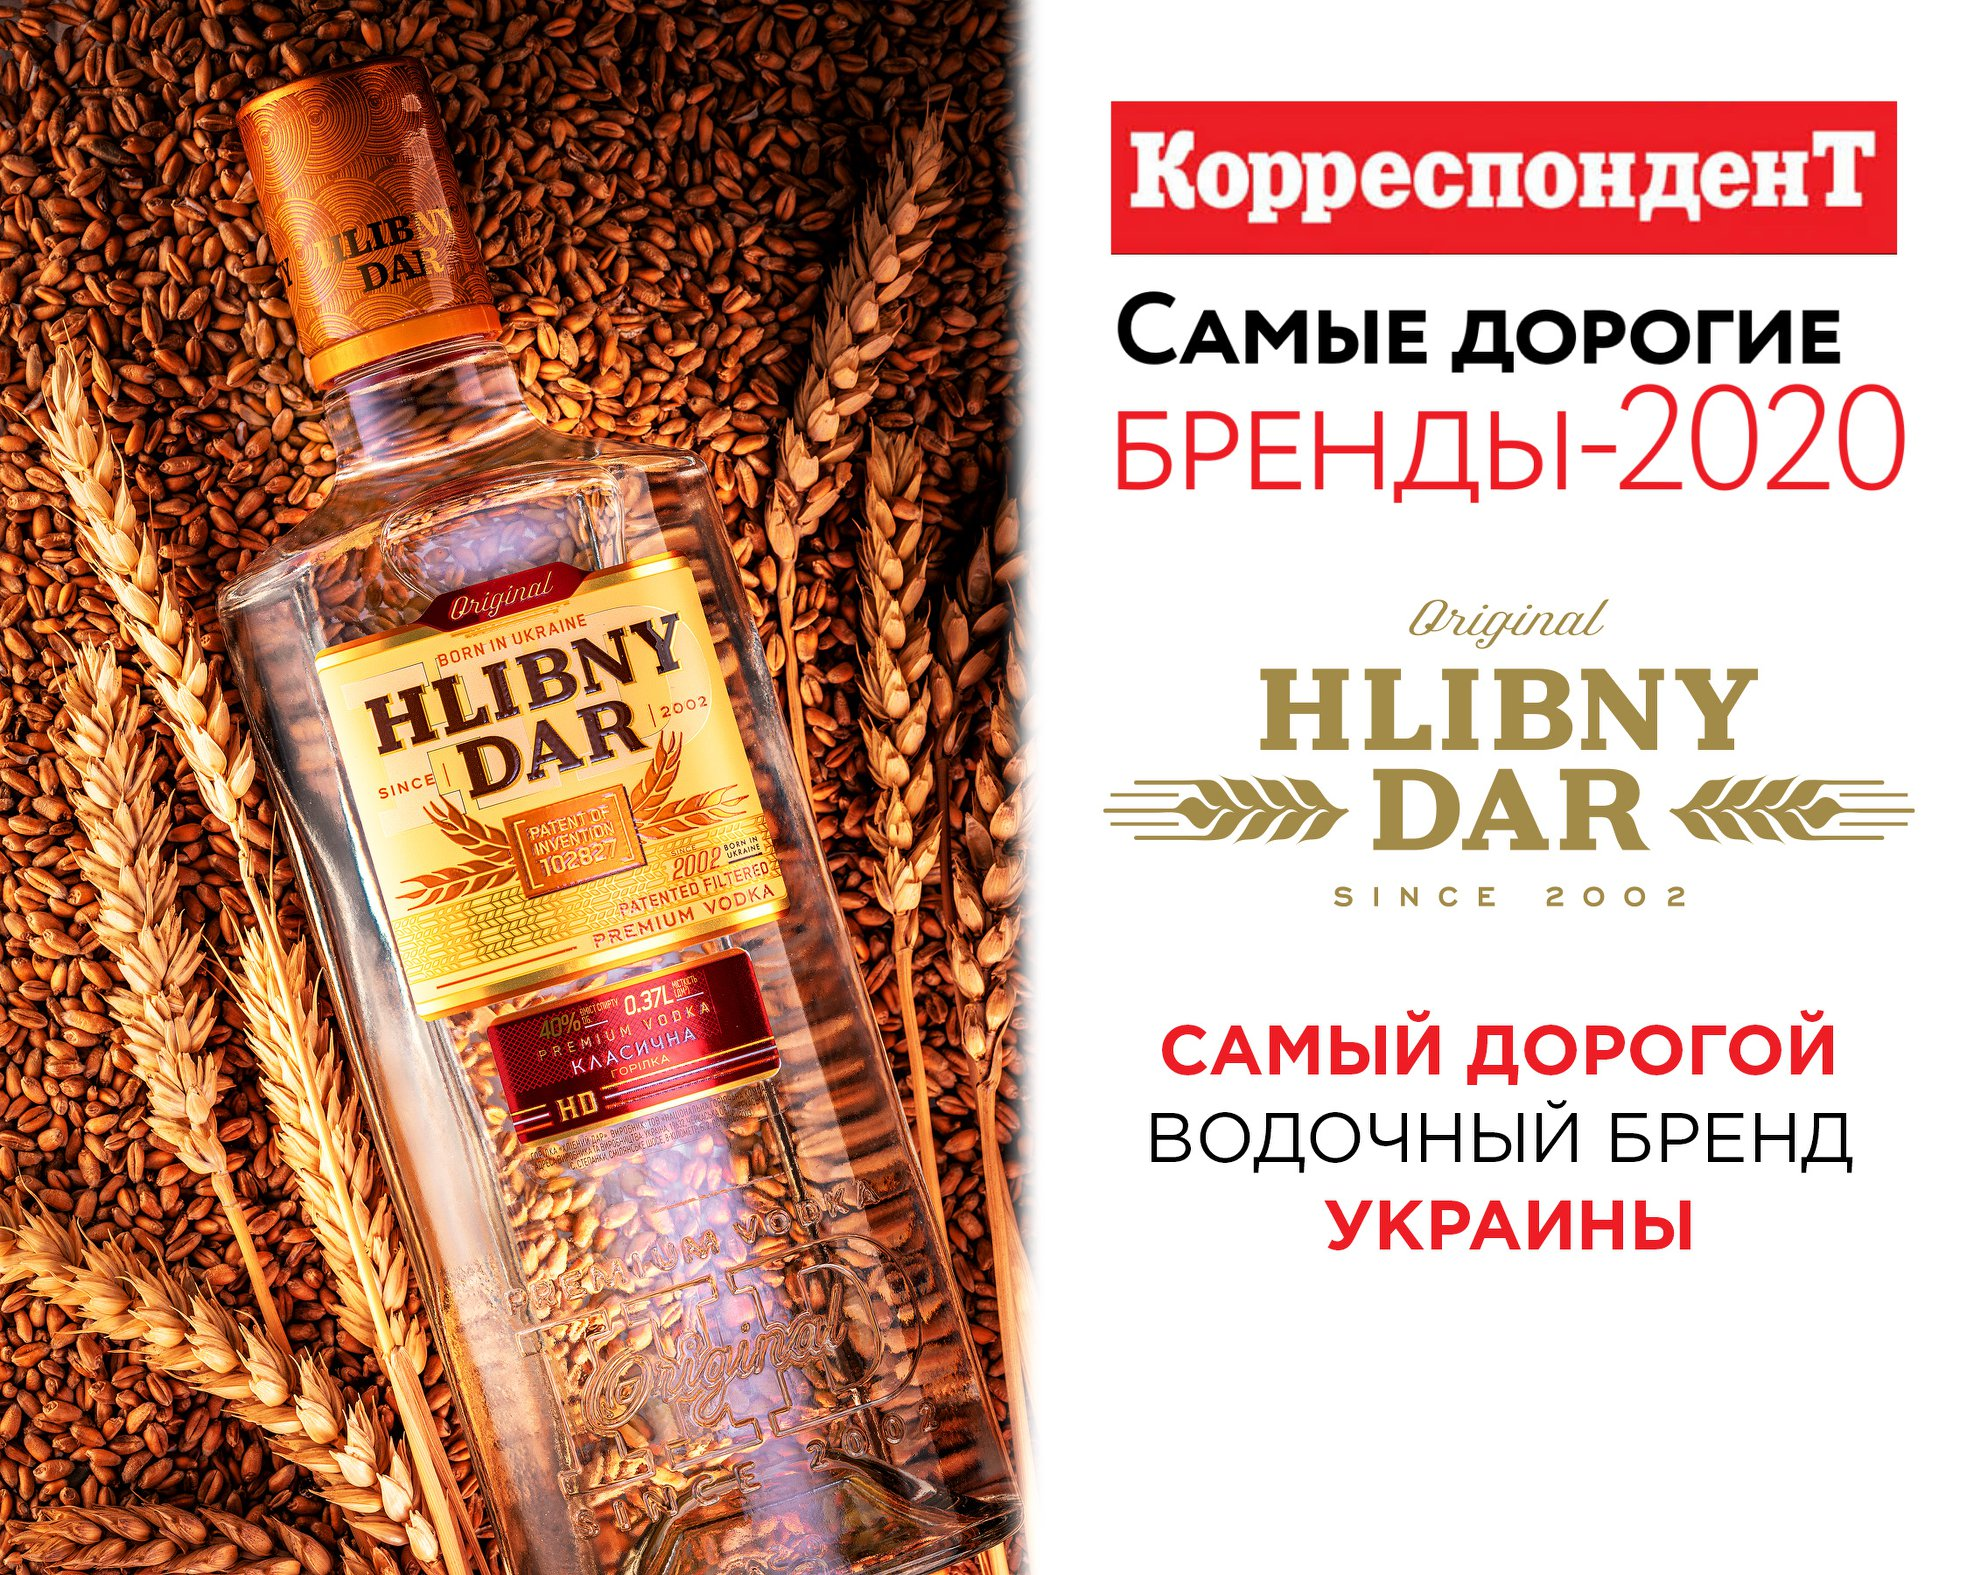 The HLIBNY DAR brand is the most expensive vodka brand in Ukraine